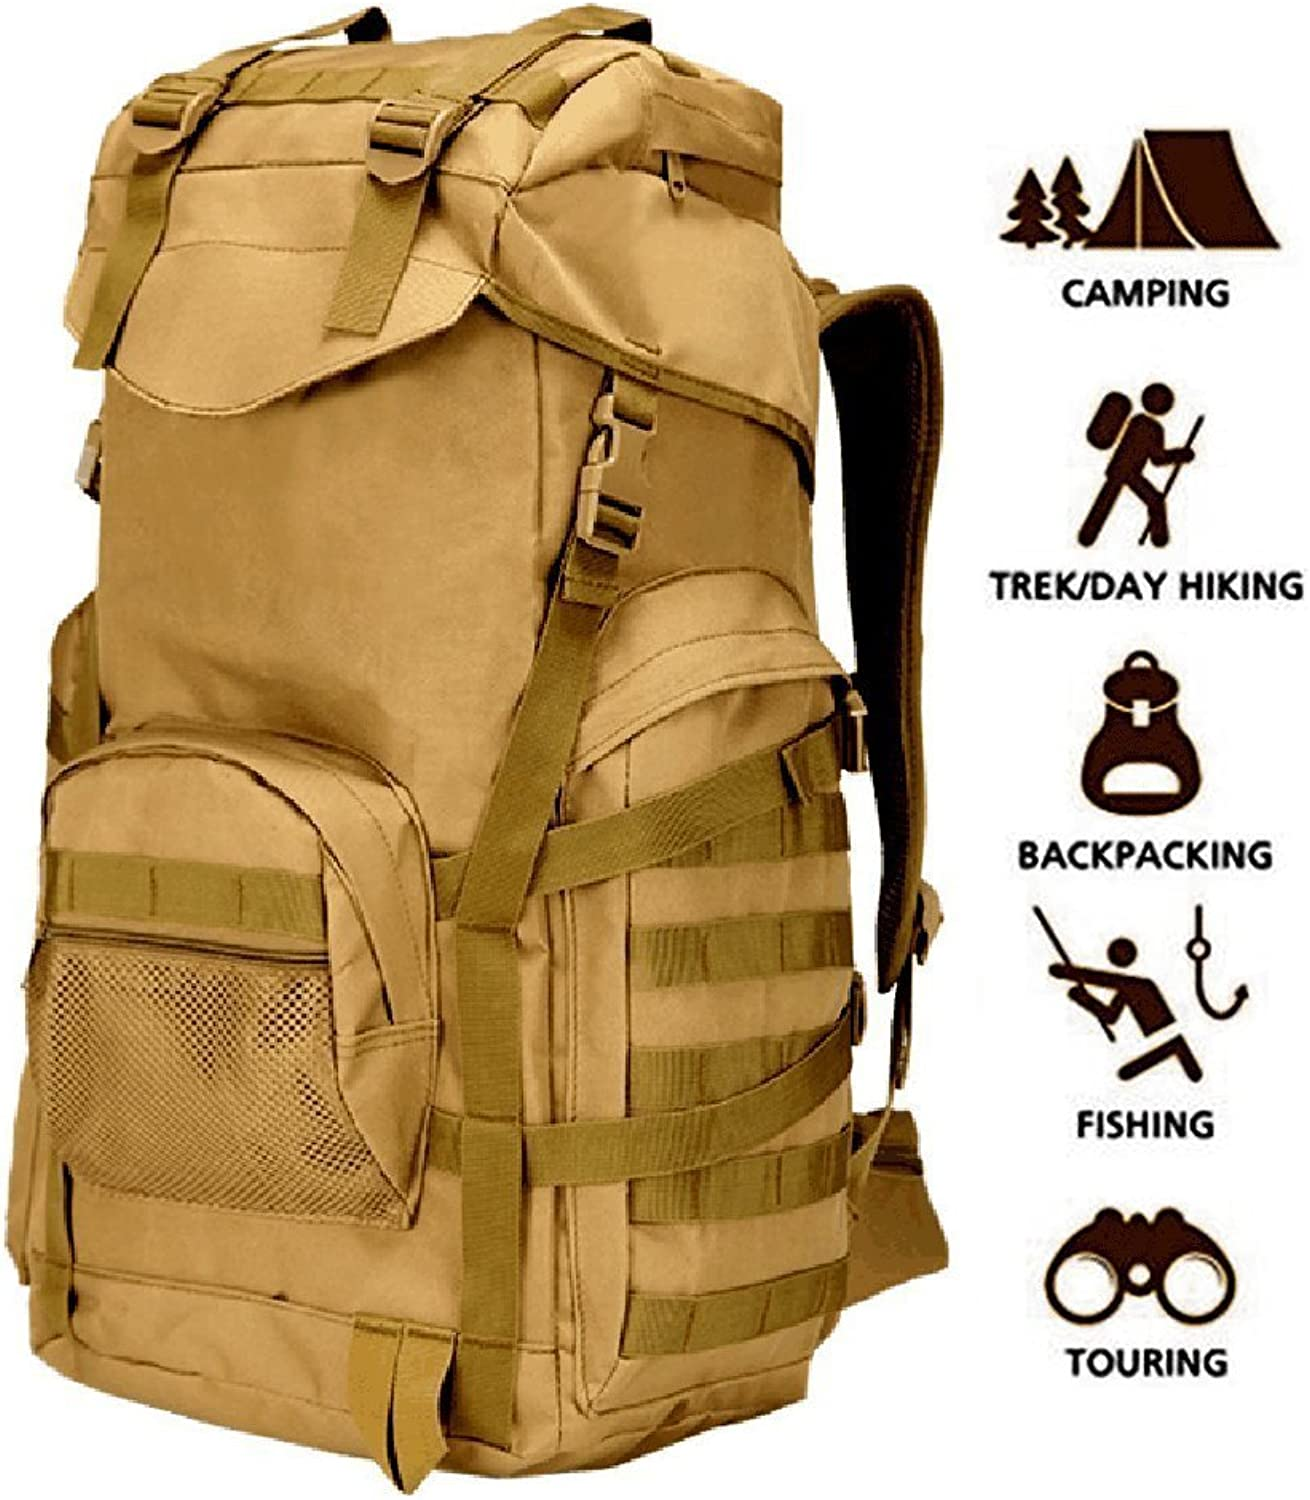 NBLEAGUE 70L Military Tactical Backpack Large Army 3 Day Assault Pack Molle Backpacks Rucksacks for Outdoor Hiking Camping Trekking Hunting